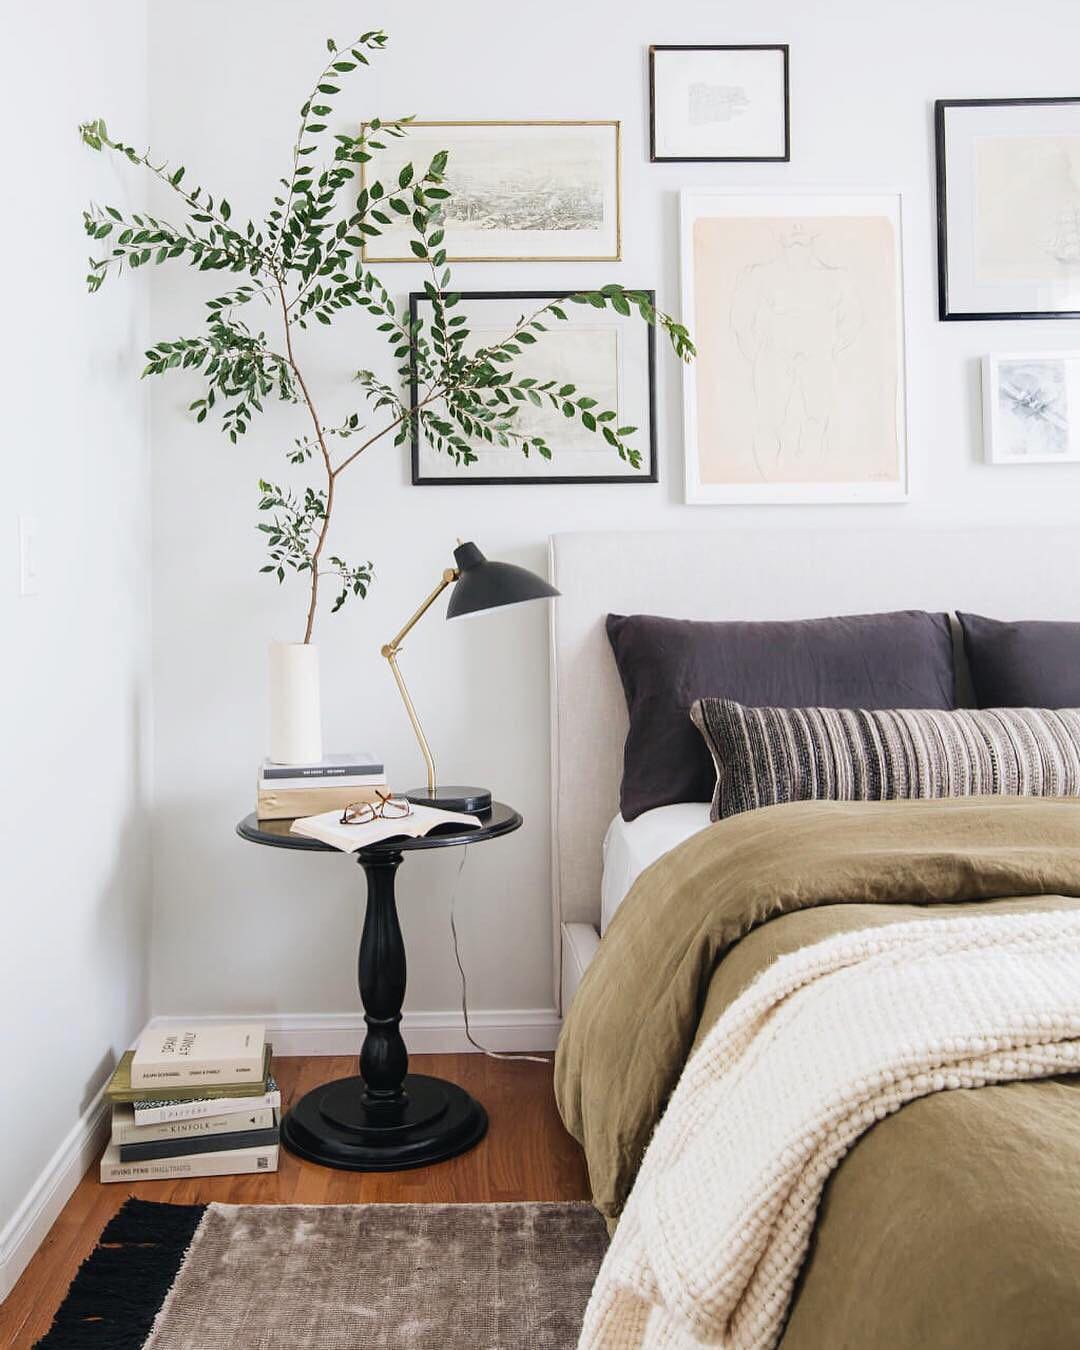 add plants in your bedroom designs to help you sleep better. Source: instagram.com/mydomaine/